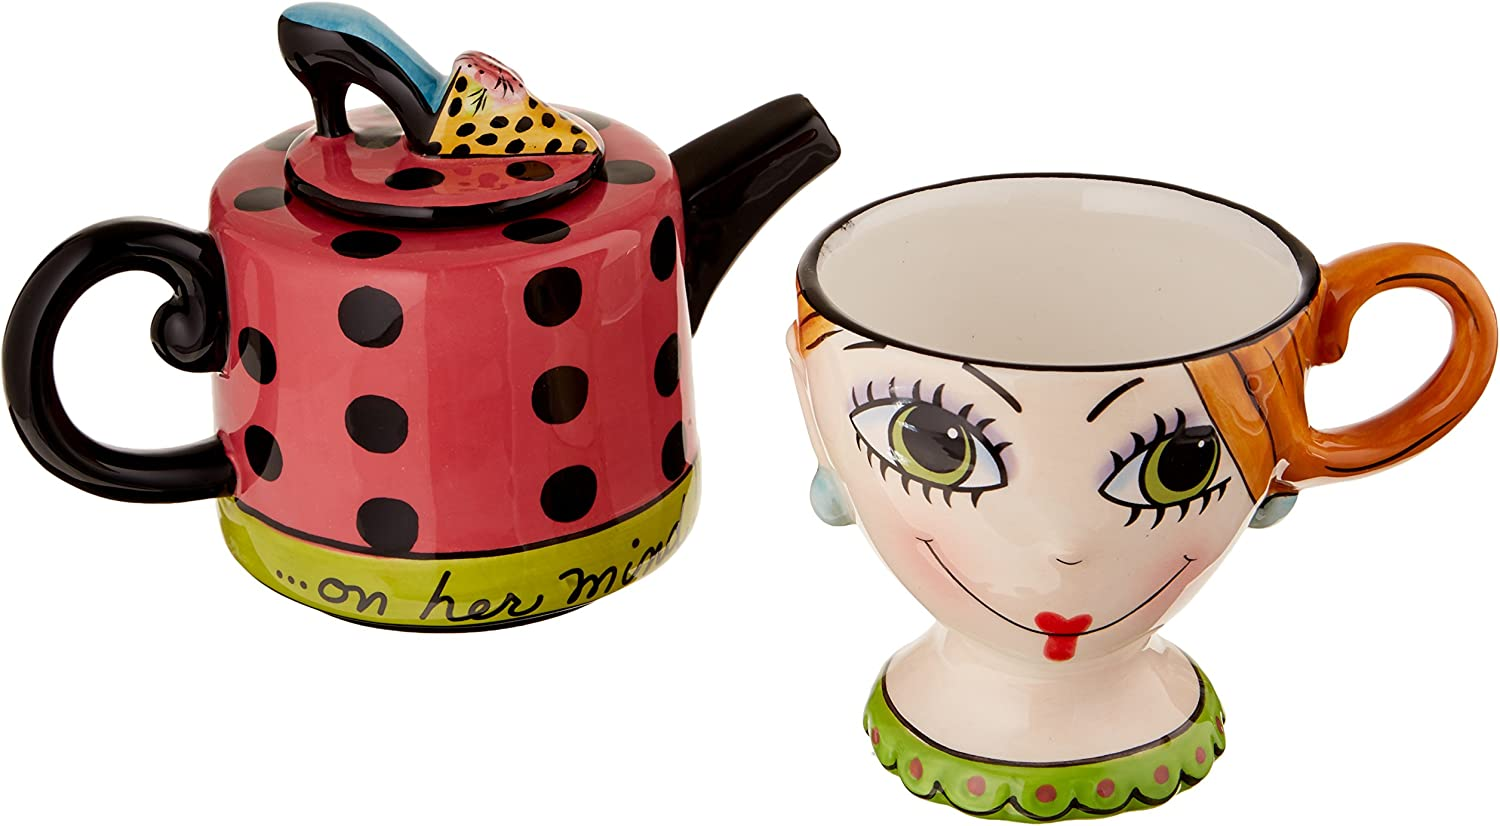 Appletree Design Shoes On Her Mind Tea for One Set, Teapot Rests on Top of Tea Cup, 8-Inch